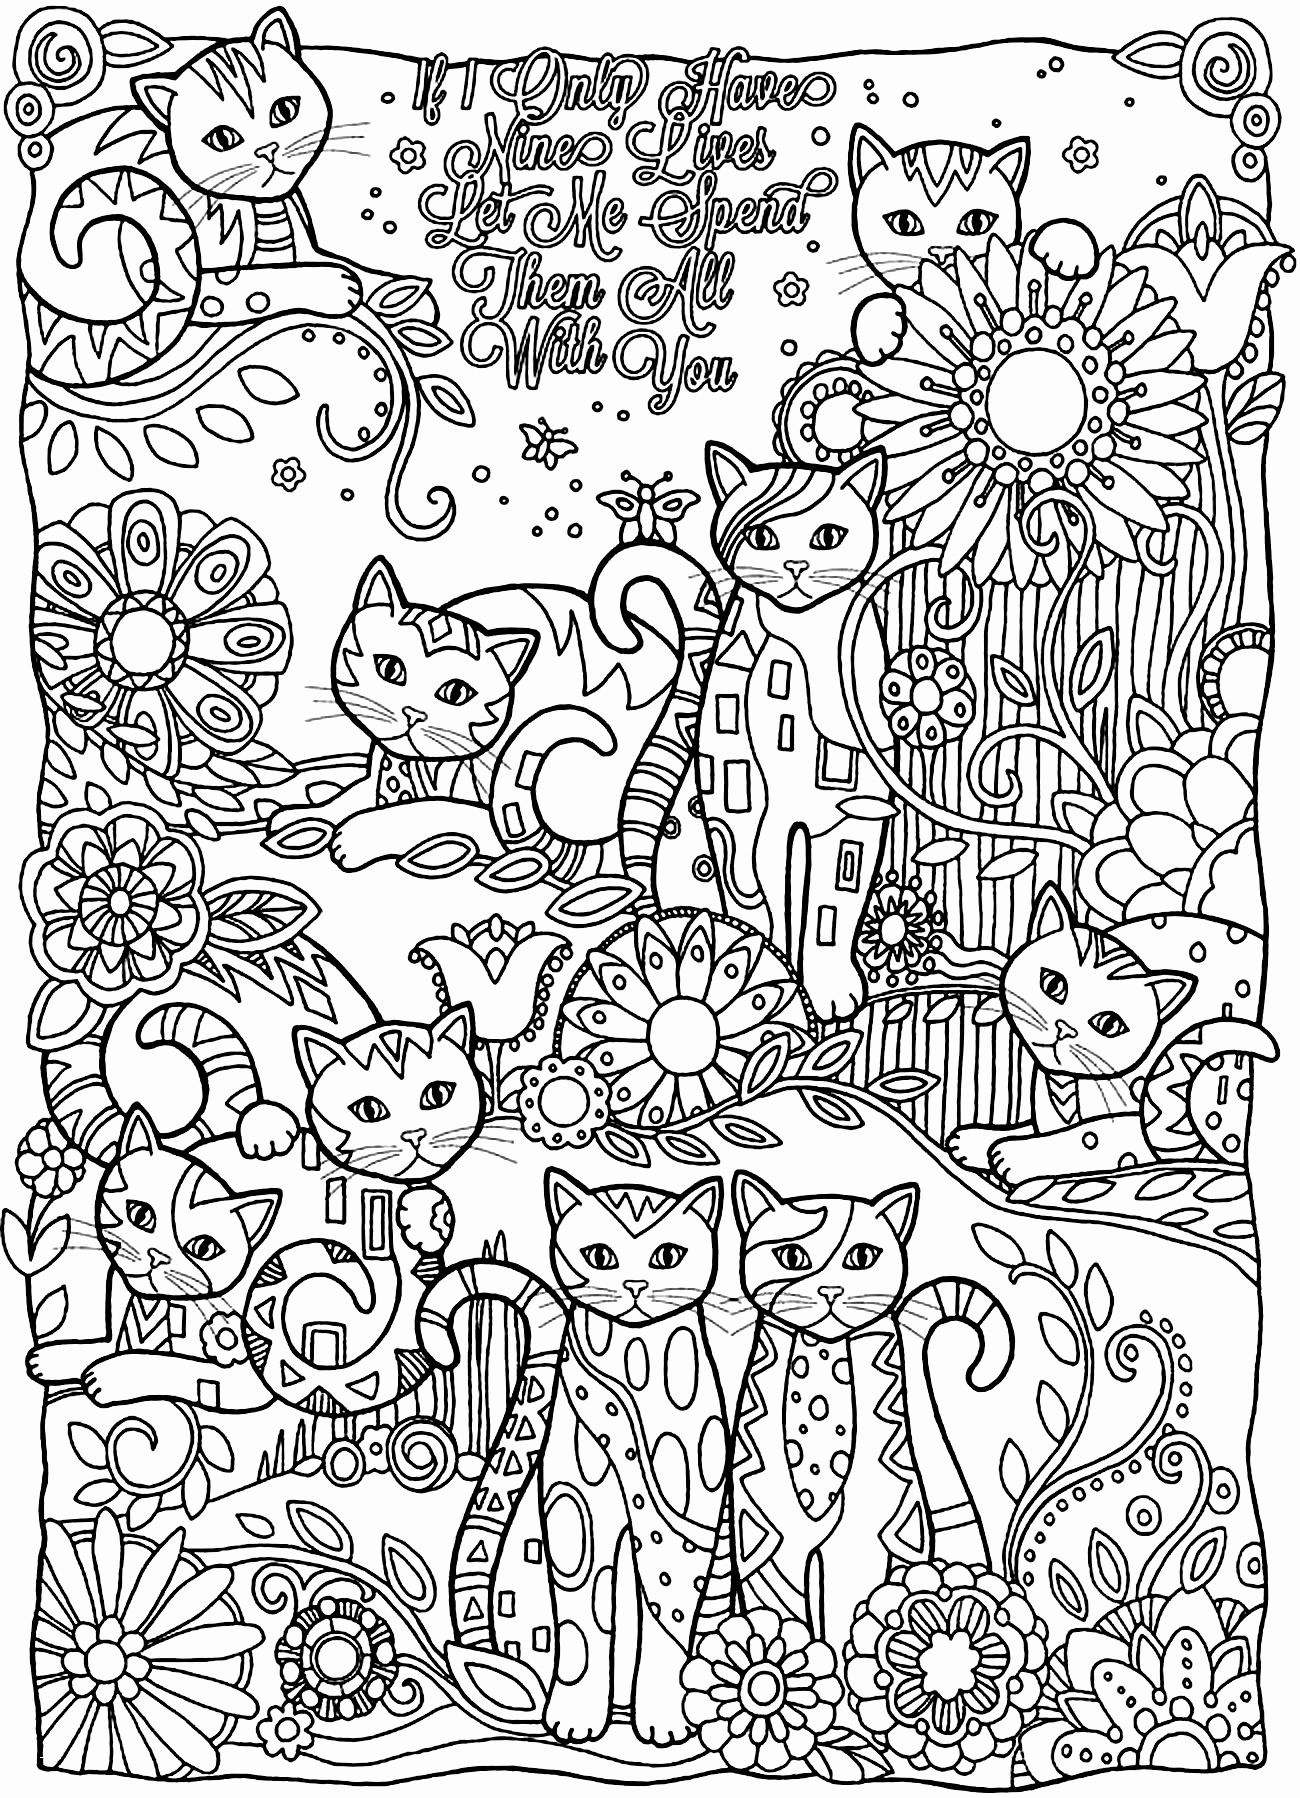 a coloring picture 29 kindness coloring pages printable download coloring coloring a picture